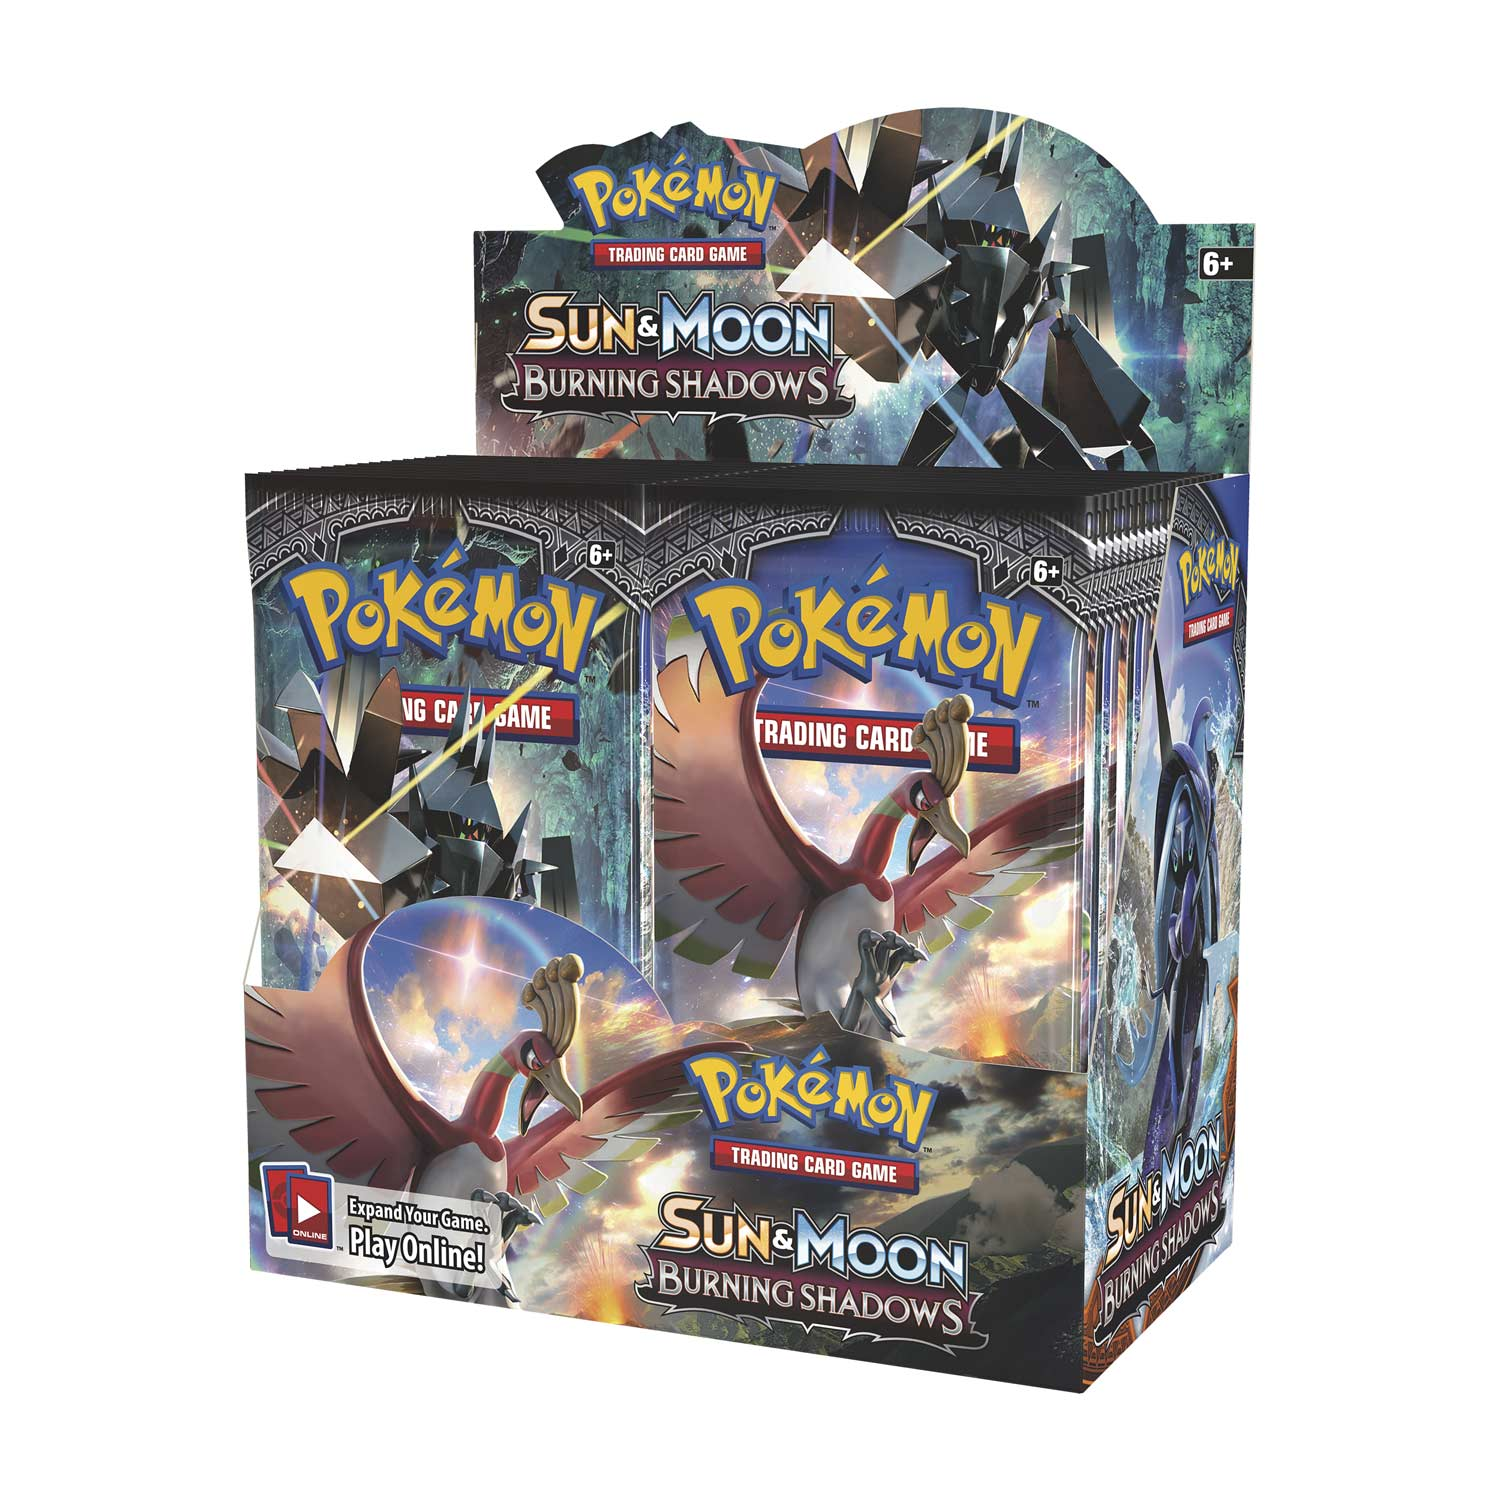 Sun & Moon 3 Burning Shadows Booster Box